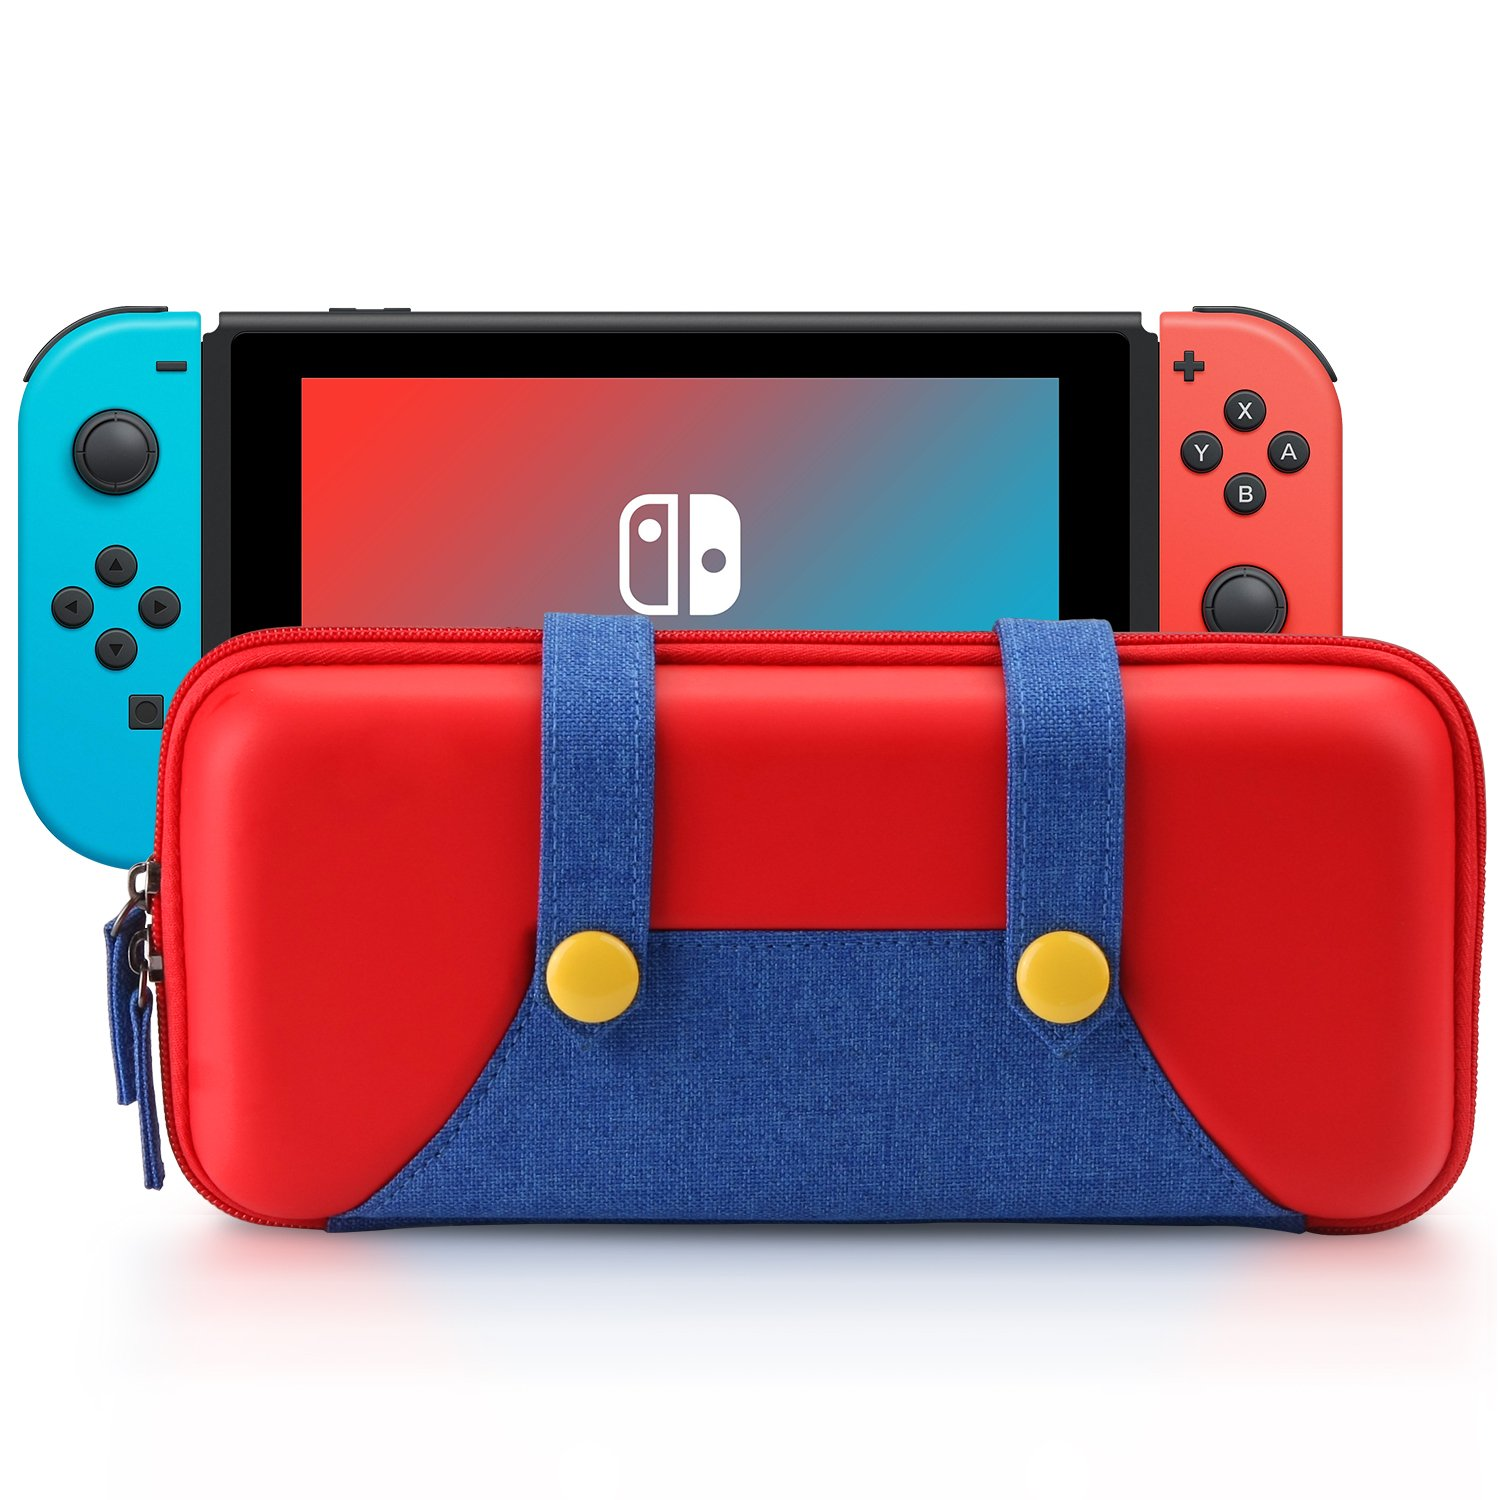 Funda de Transporte Compatible con Nintendo Switch, Carcasa ...